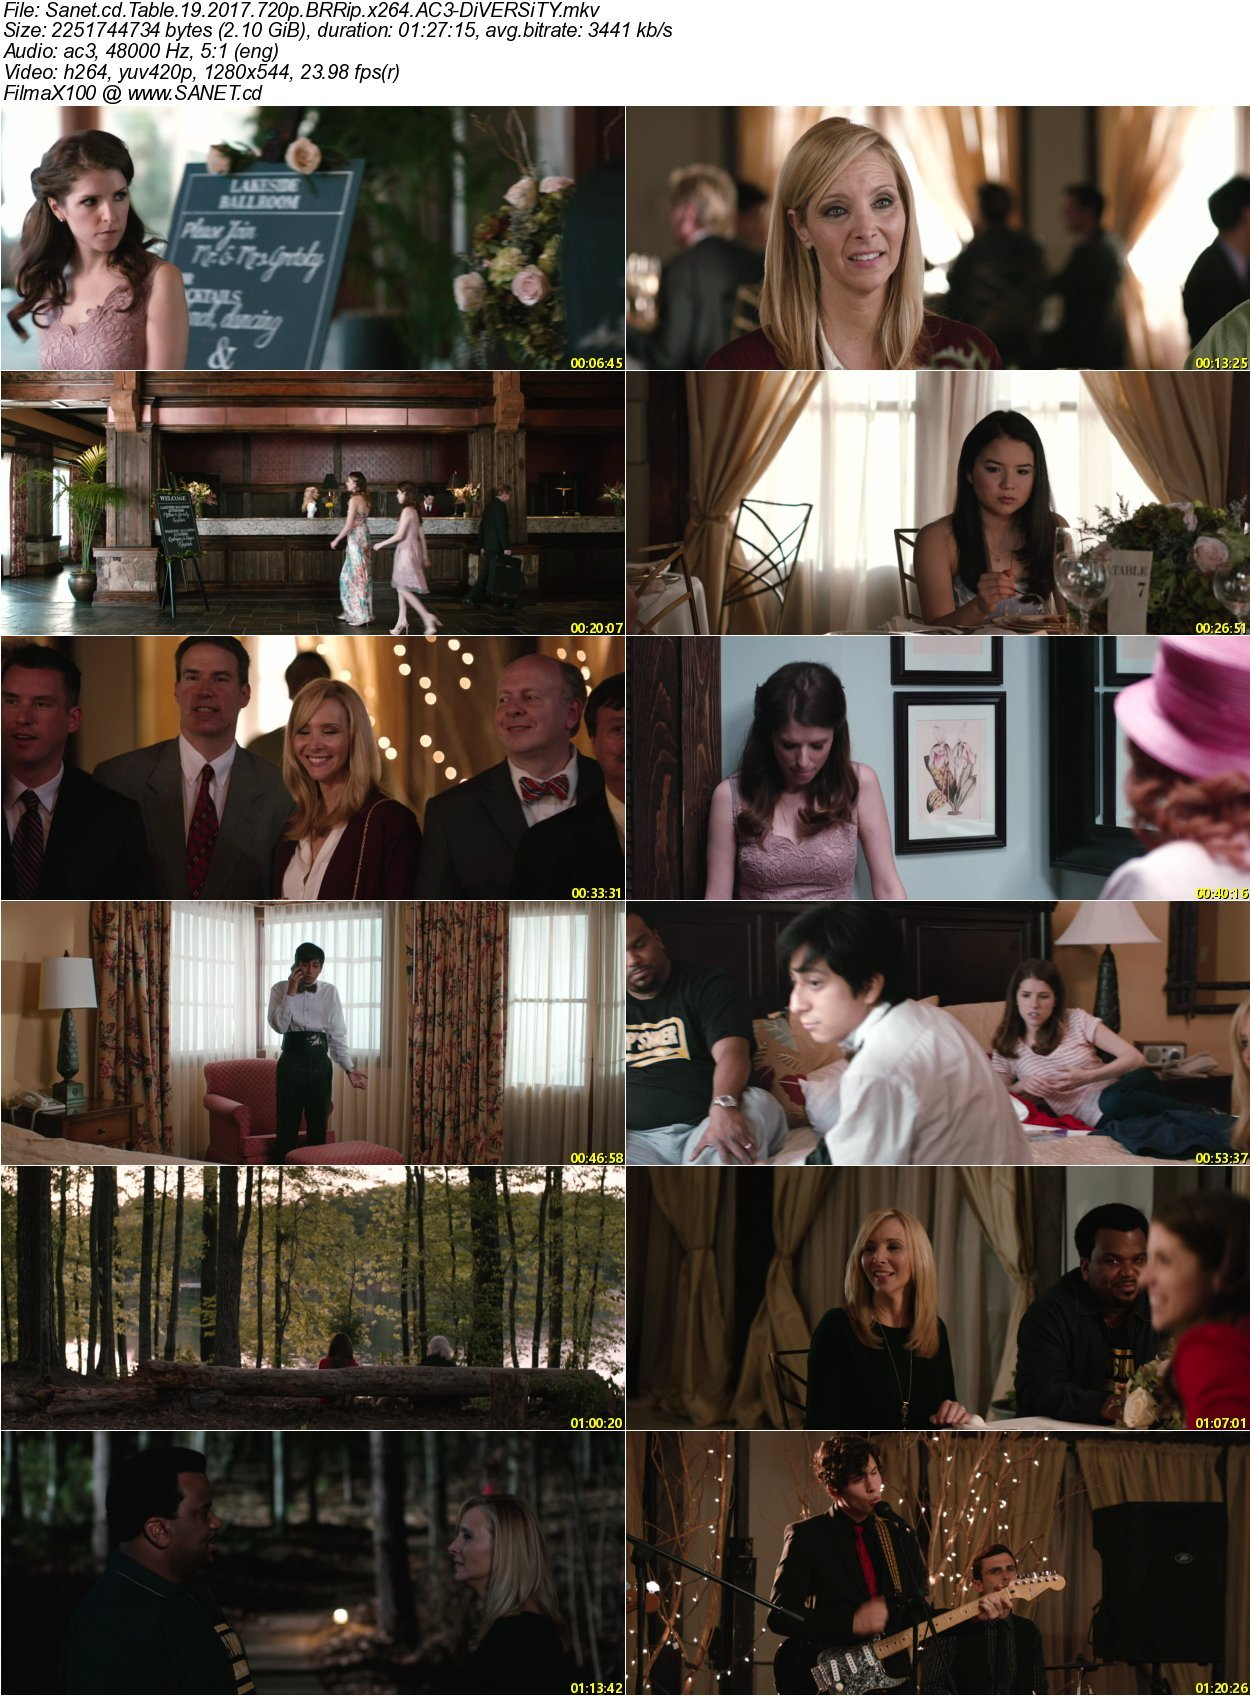 Download table 19 2017 720p brrip x264 ac3 diversity for Table 19 imdb